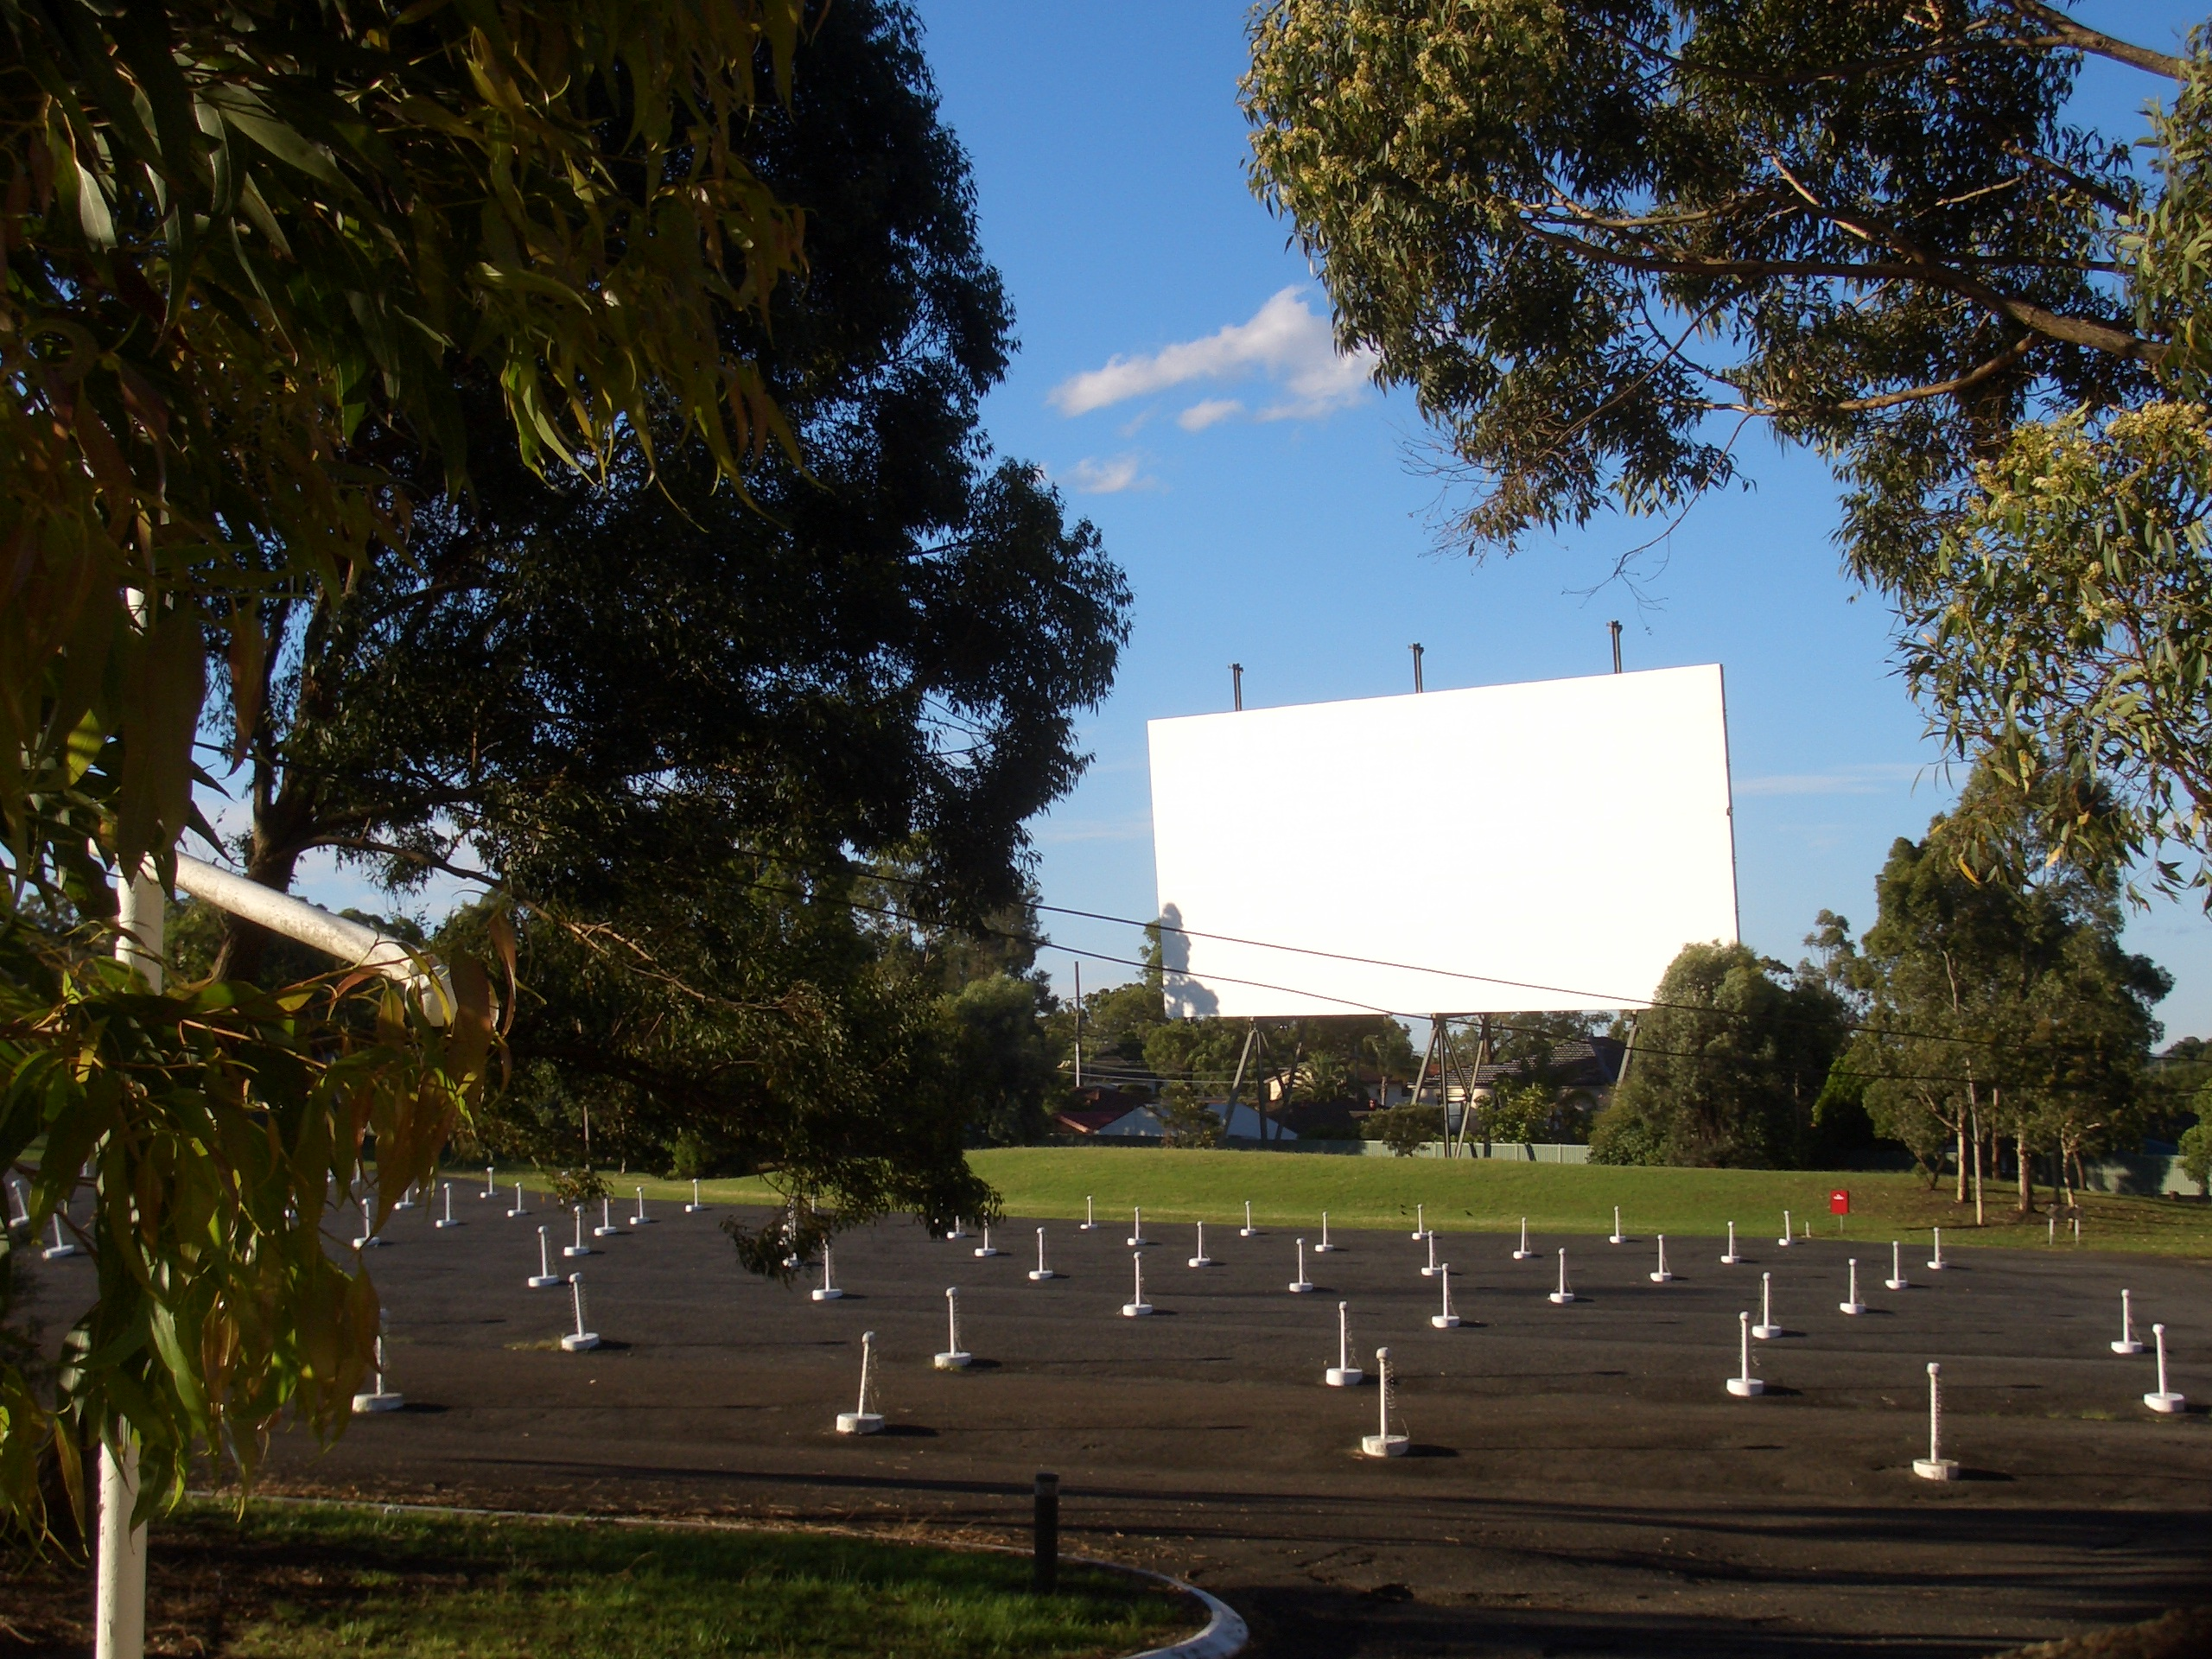 File:Bass Hill Drive-in Cinema.JPG - Wikimedia Commons